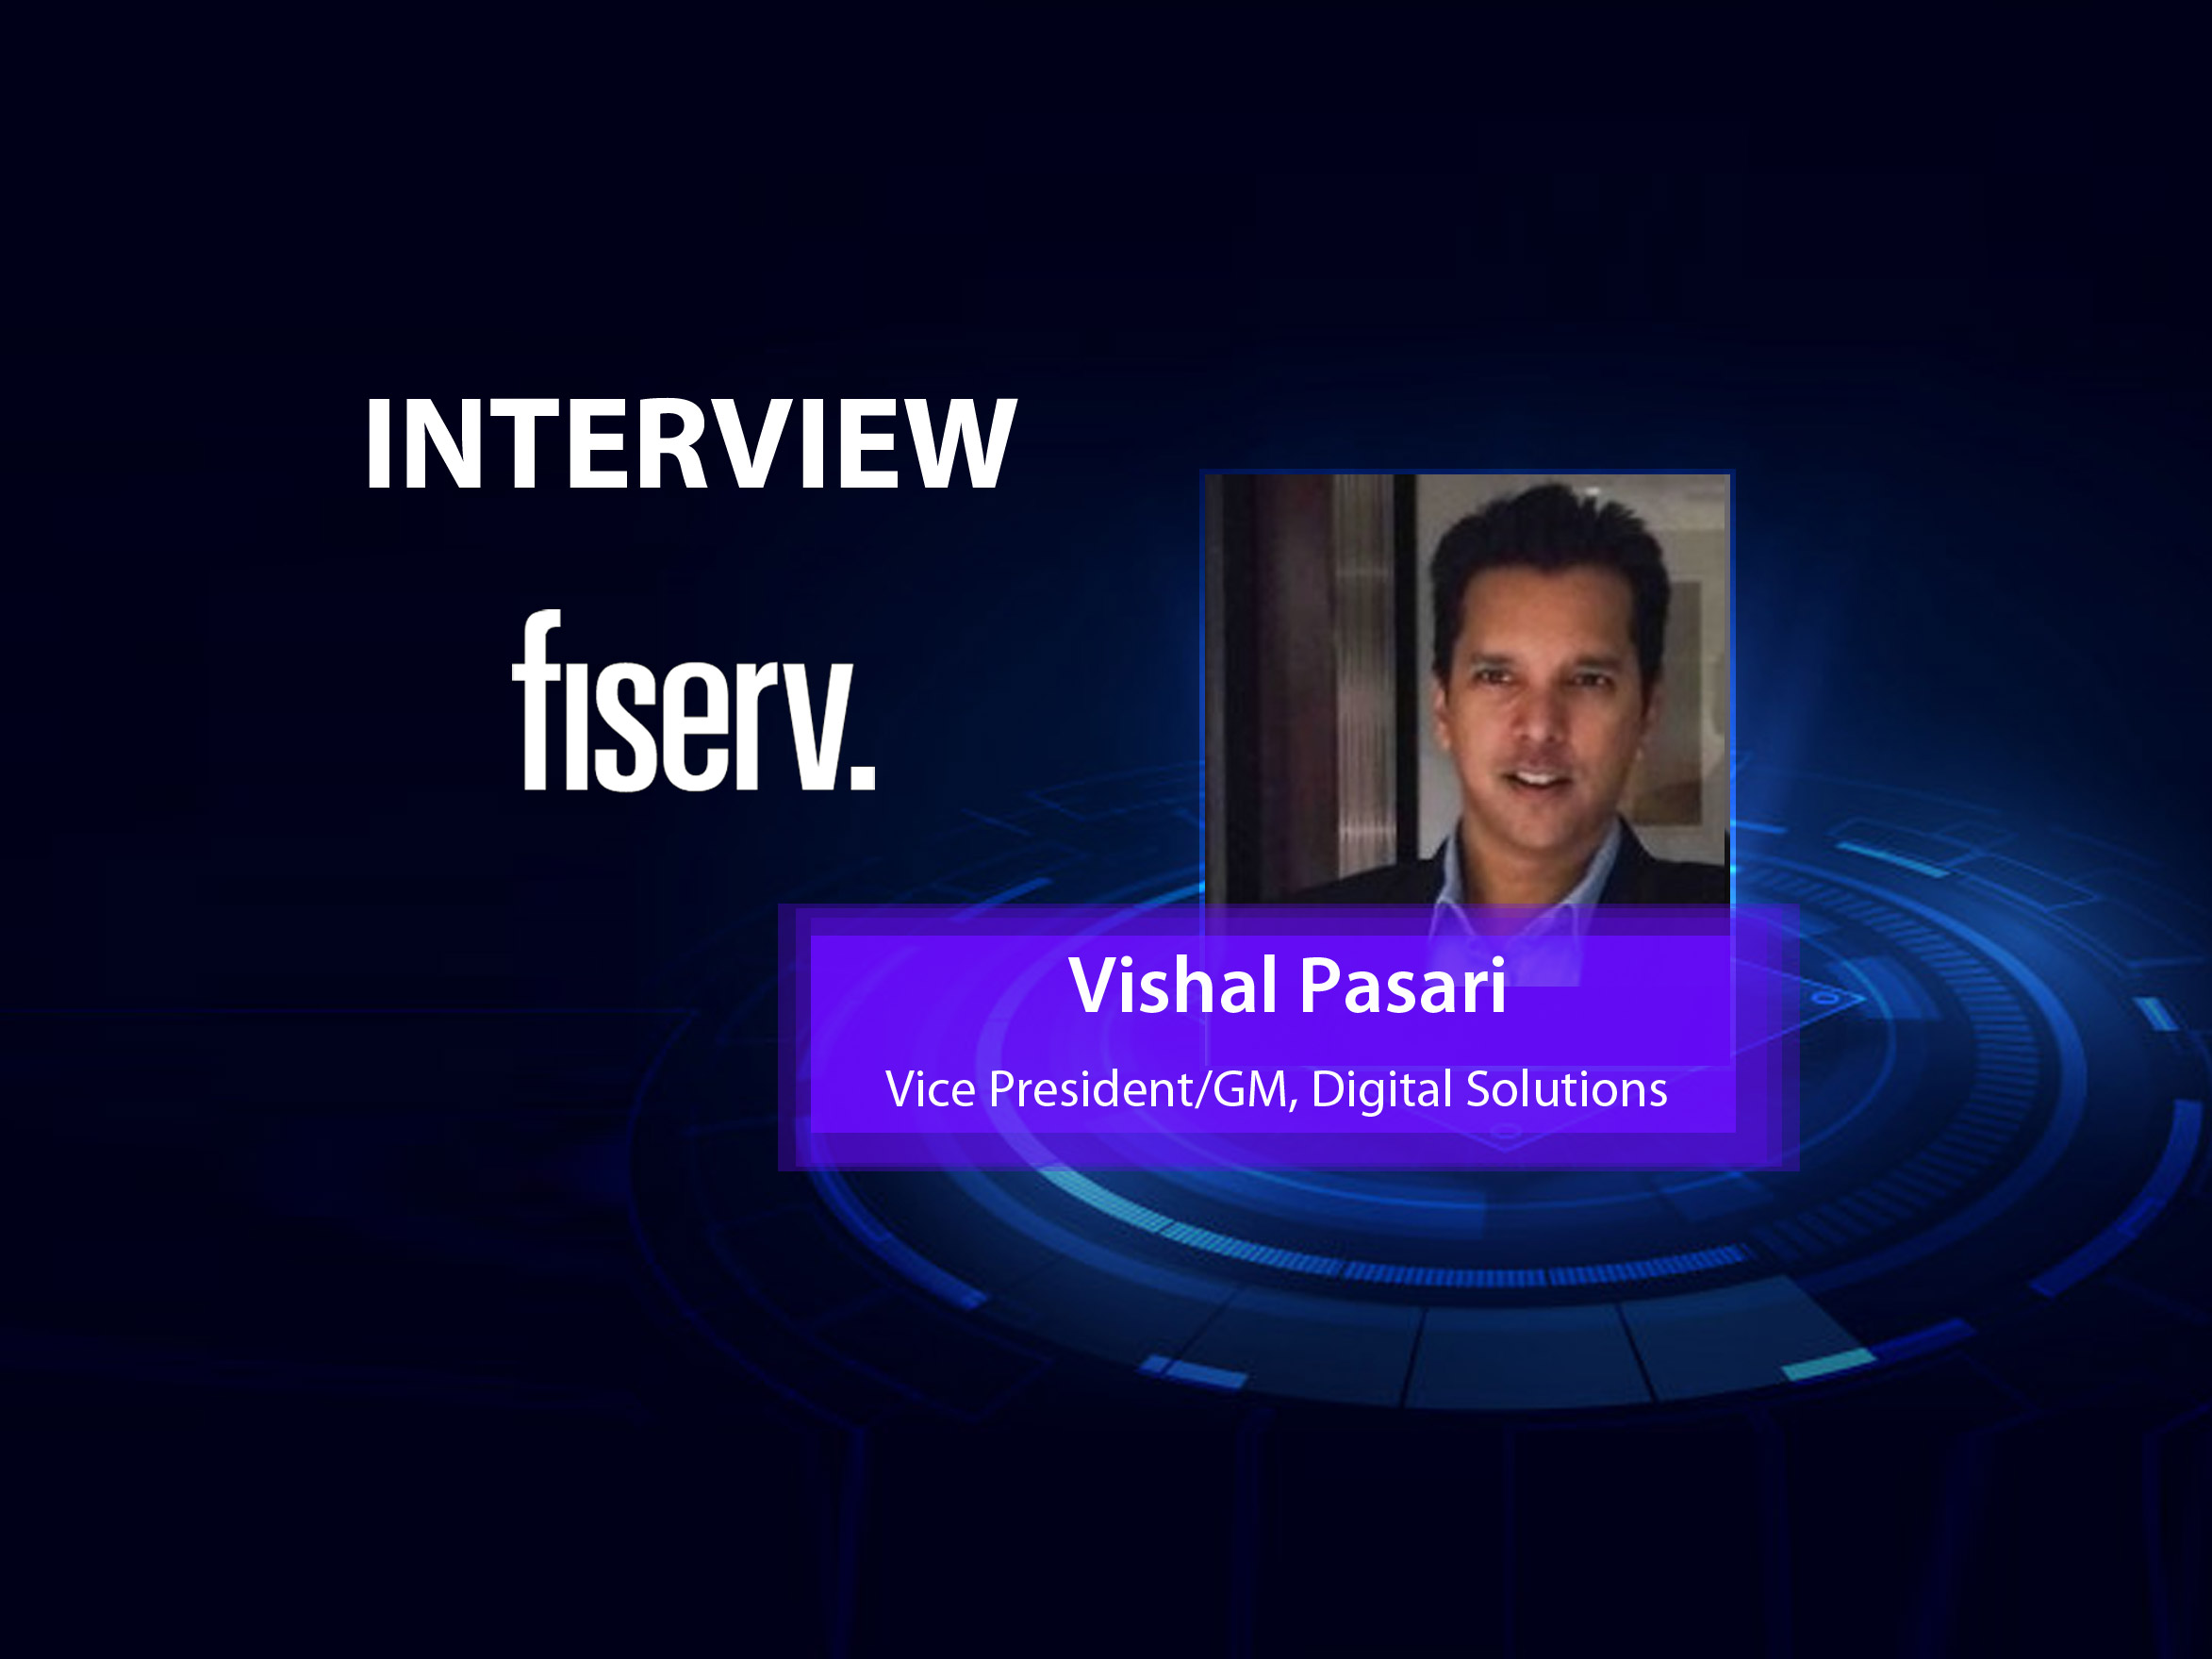 GlobalFintechSeries Interview with Vishal Pasari, VP and GM, Digital Solutions at Fiserv